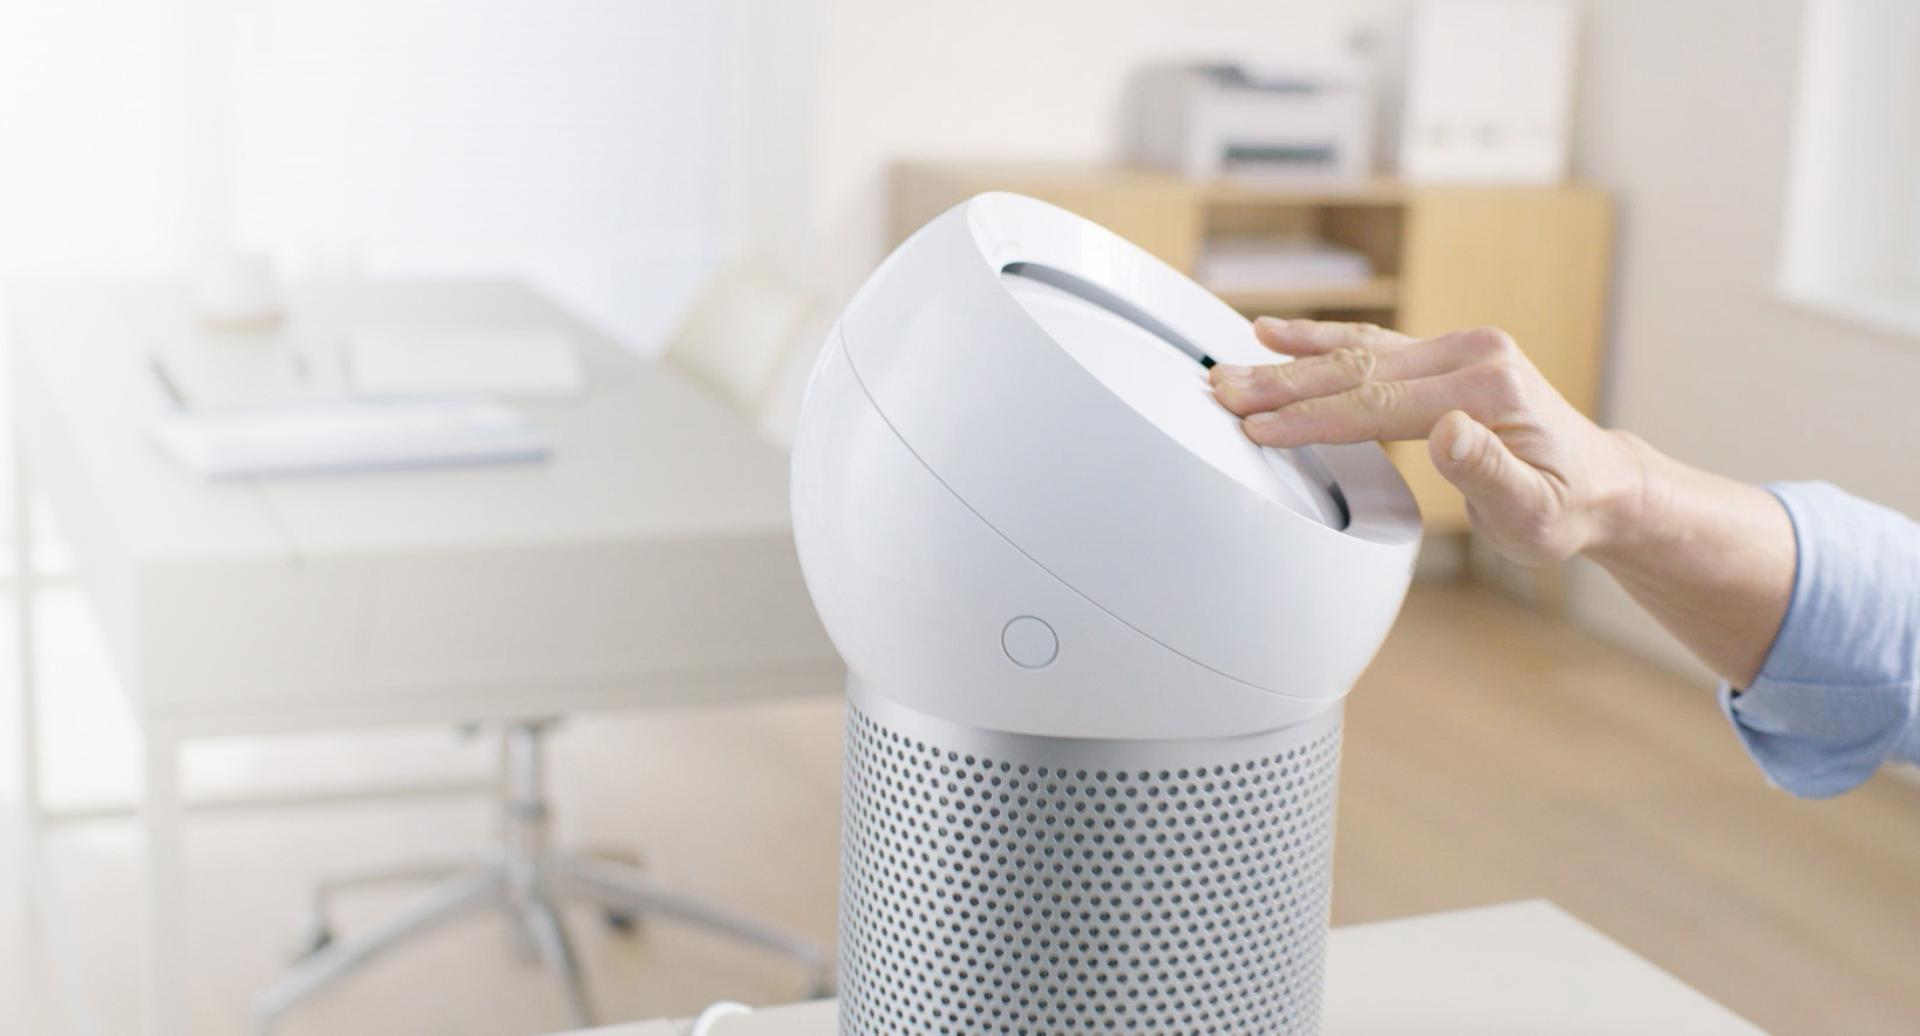 Hand reaches out to refocus airflow on the Dyson Pure Cool Me personal purifying fan